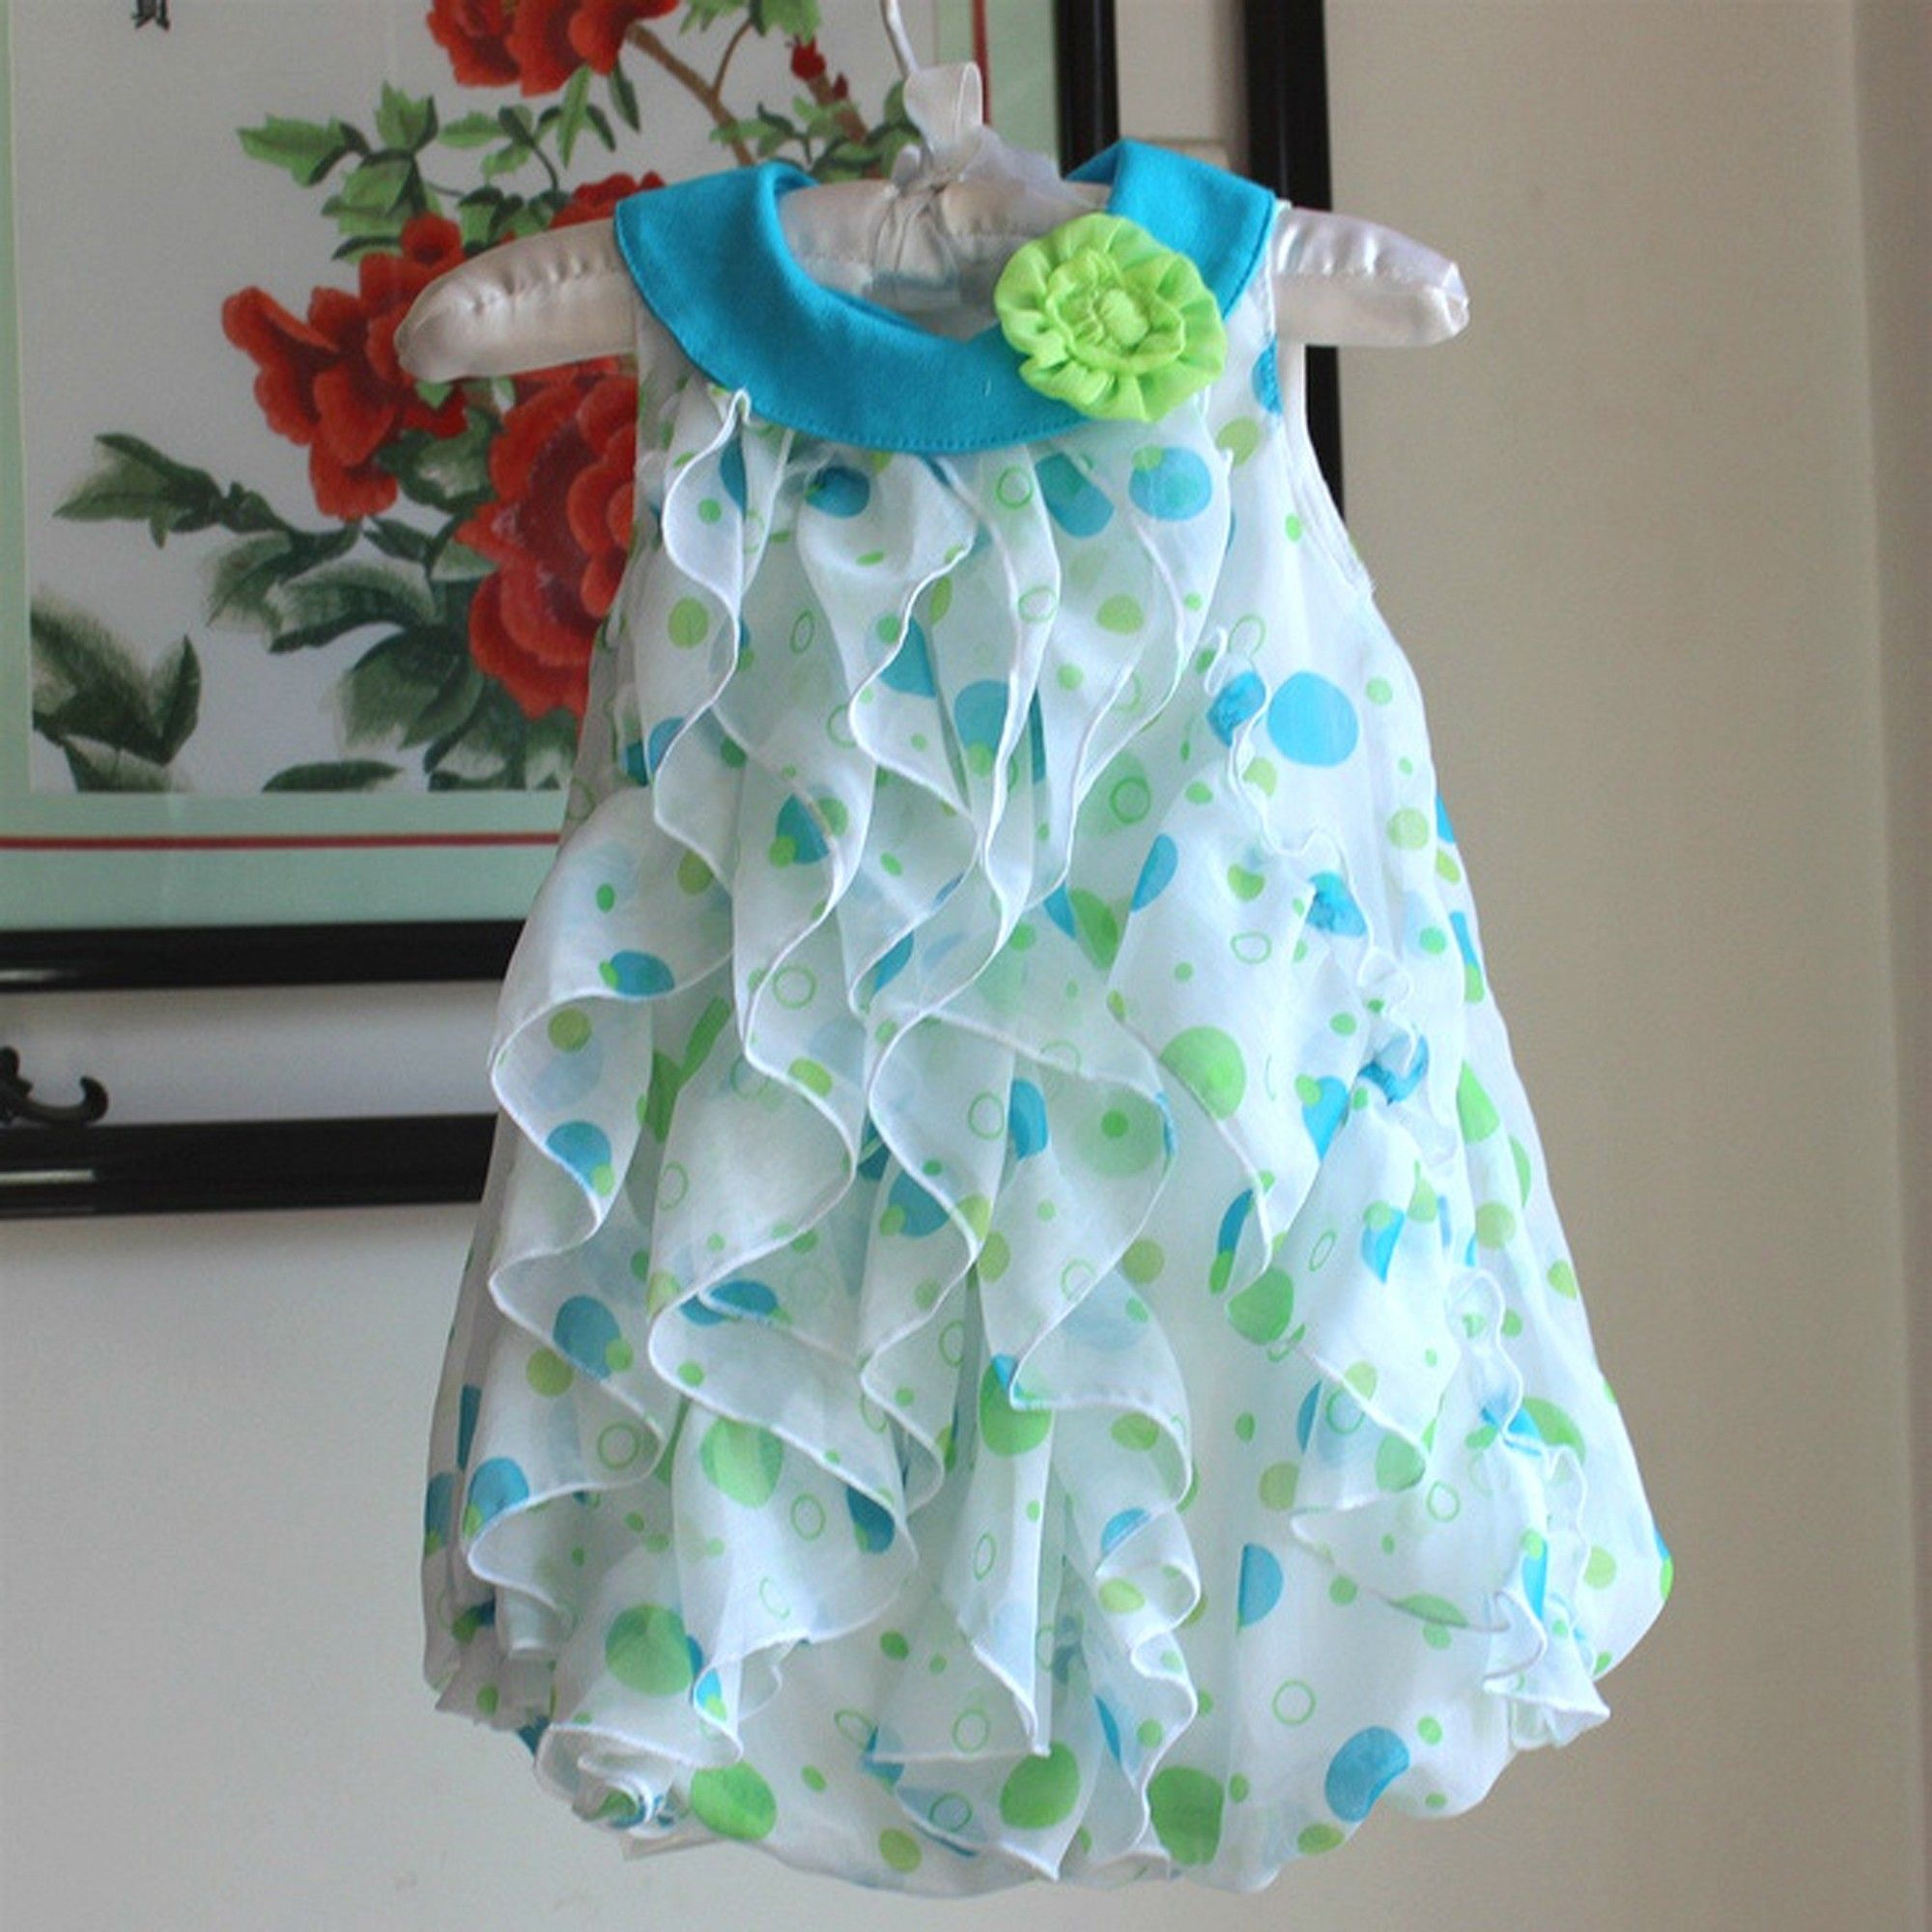 White & Sky Blue Floral Applique Dress - Lil Mantra